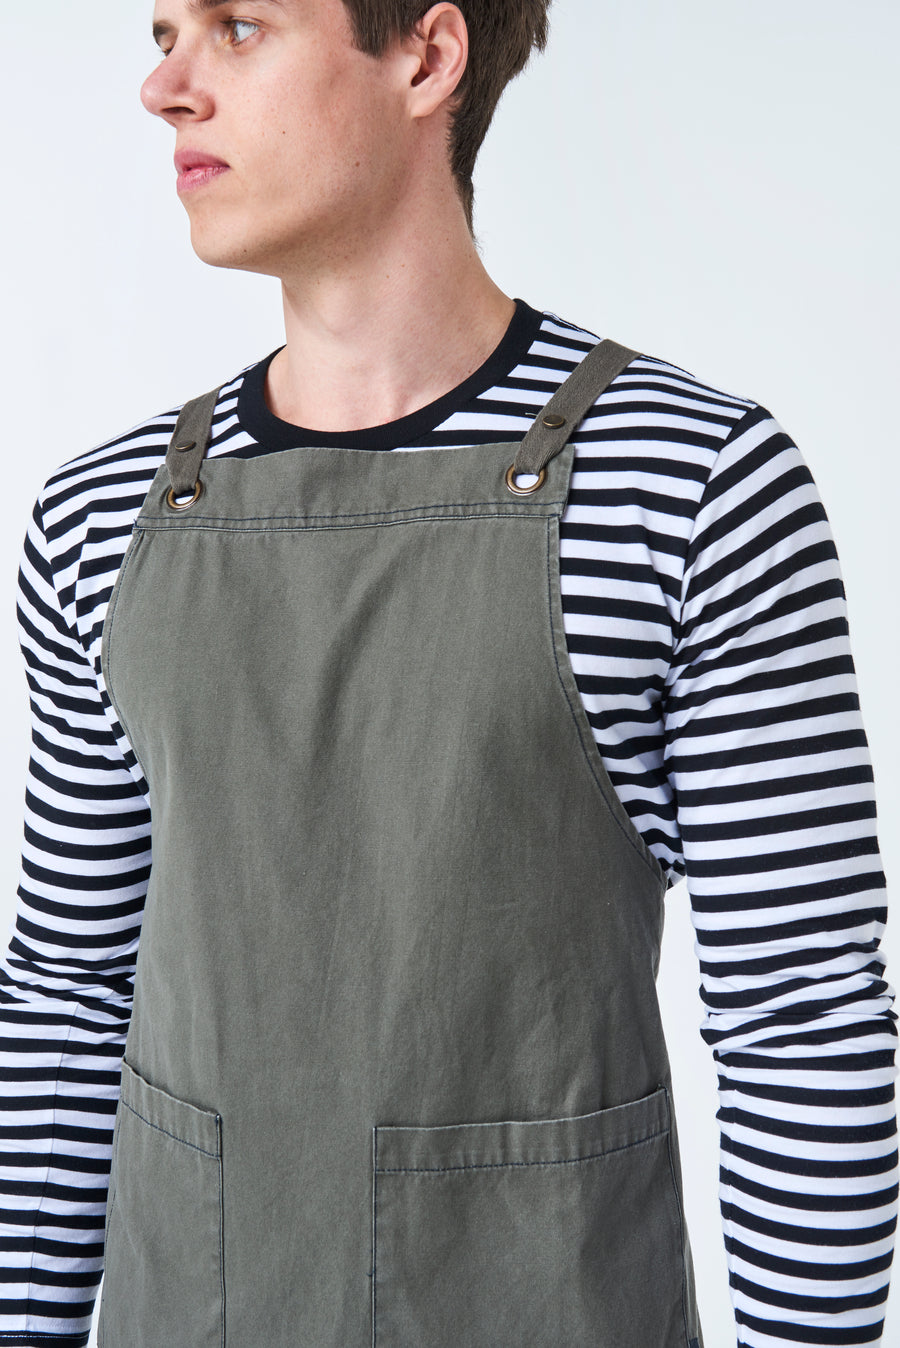 ARCHIE Waist Apron with textured tape straps - Khaki Canvas